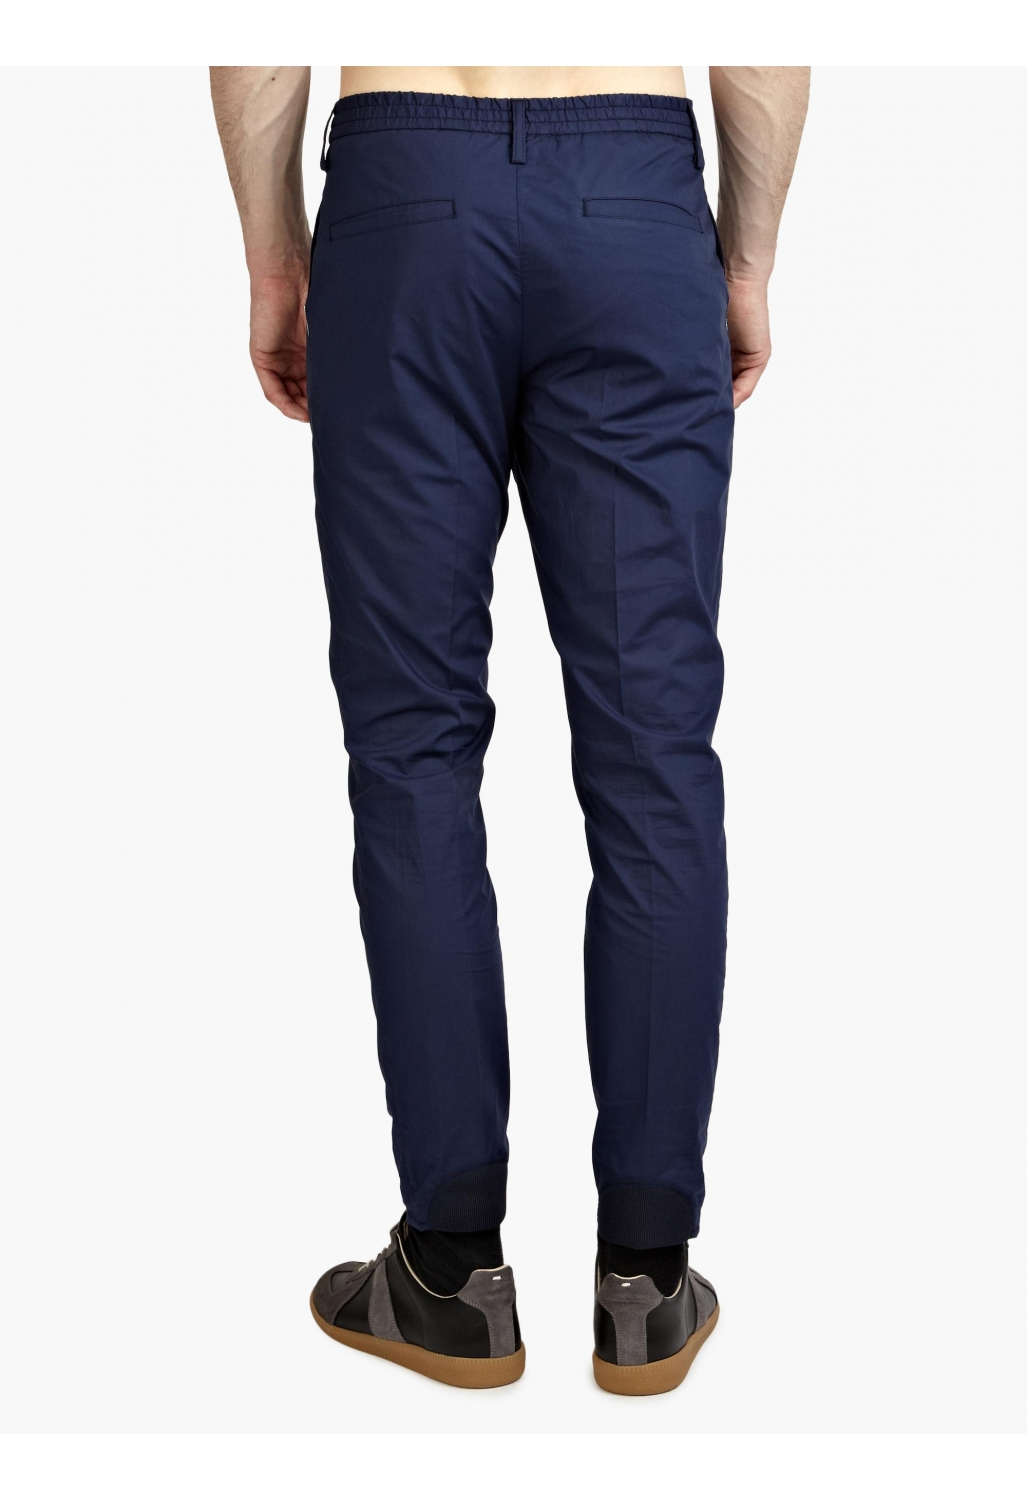 Shop for men's Pants, trousers & slacks online at dnxvvyut.ml Browse the latest Pants styles for men from Jos. A Bank. FREE shipping on orders over $